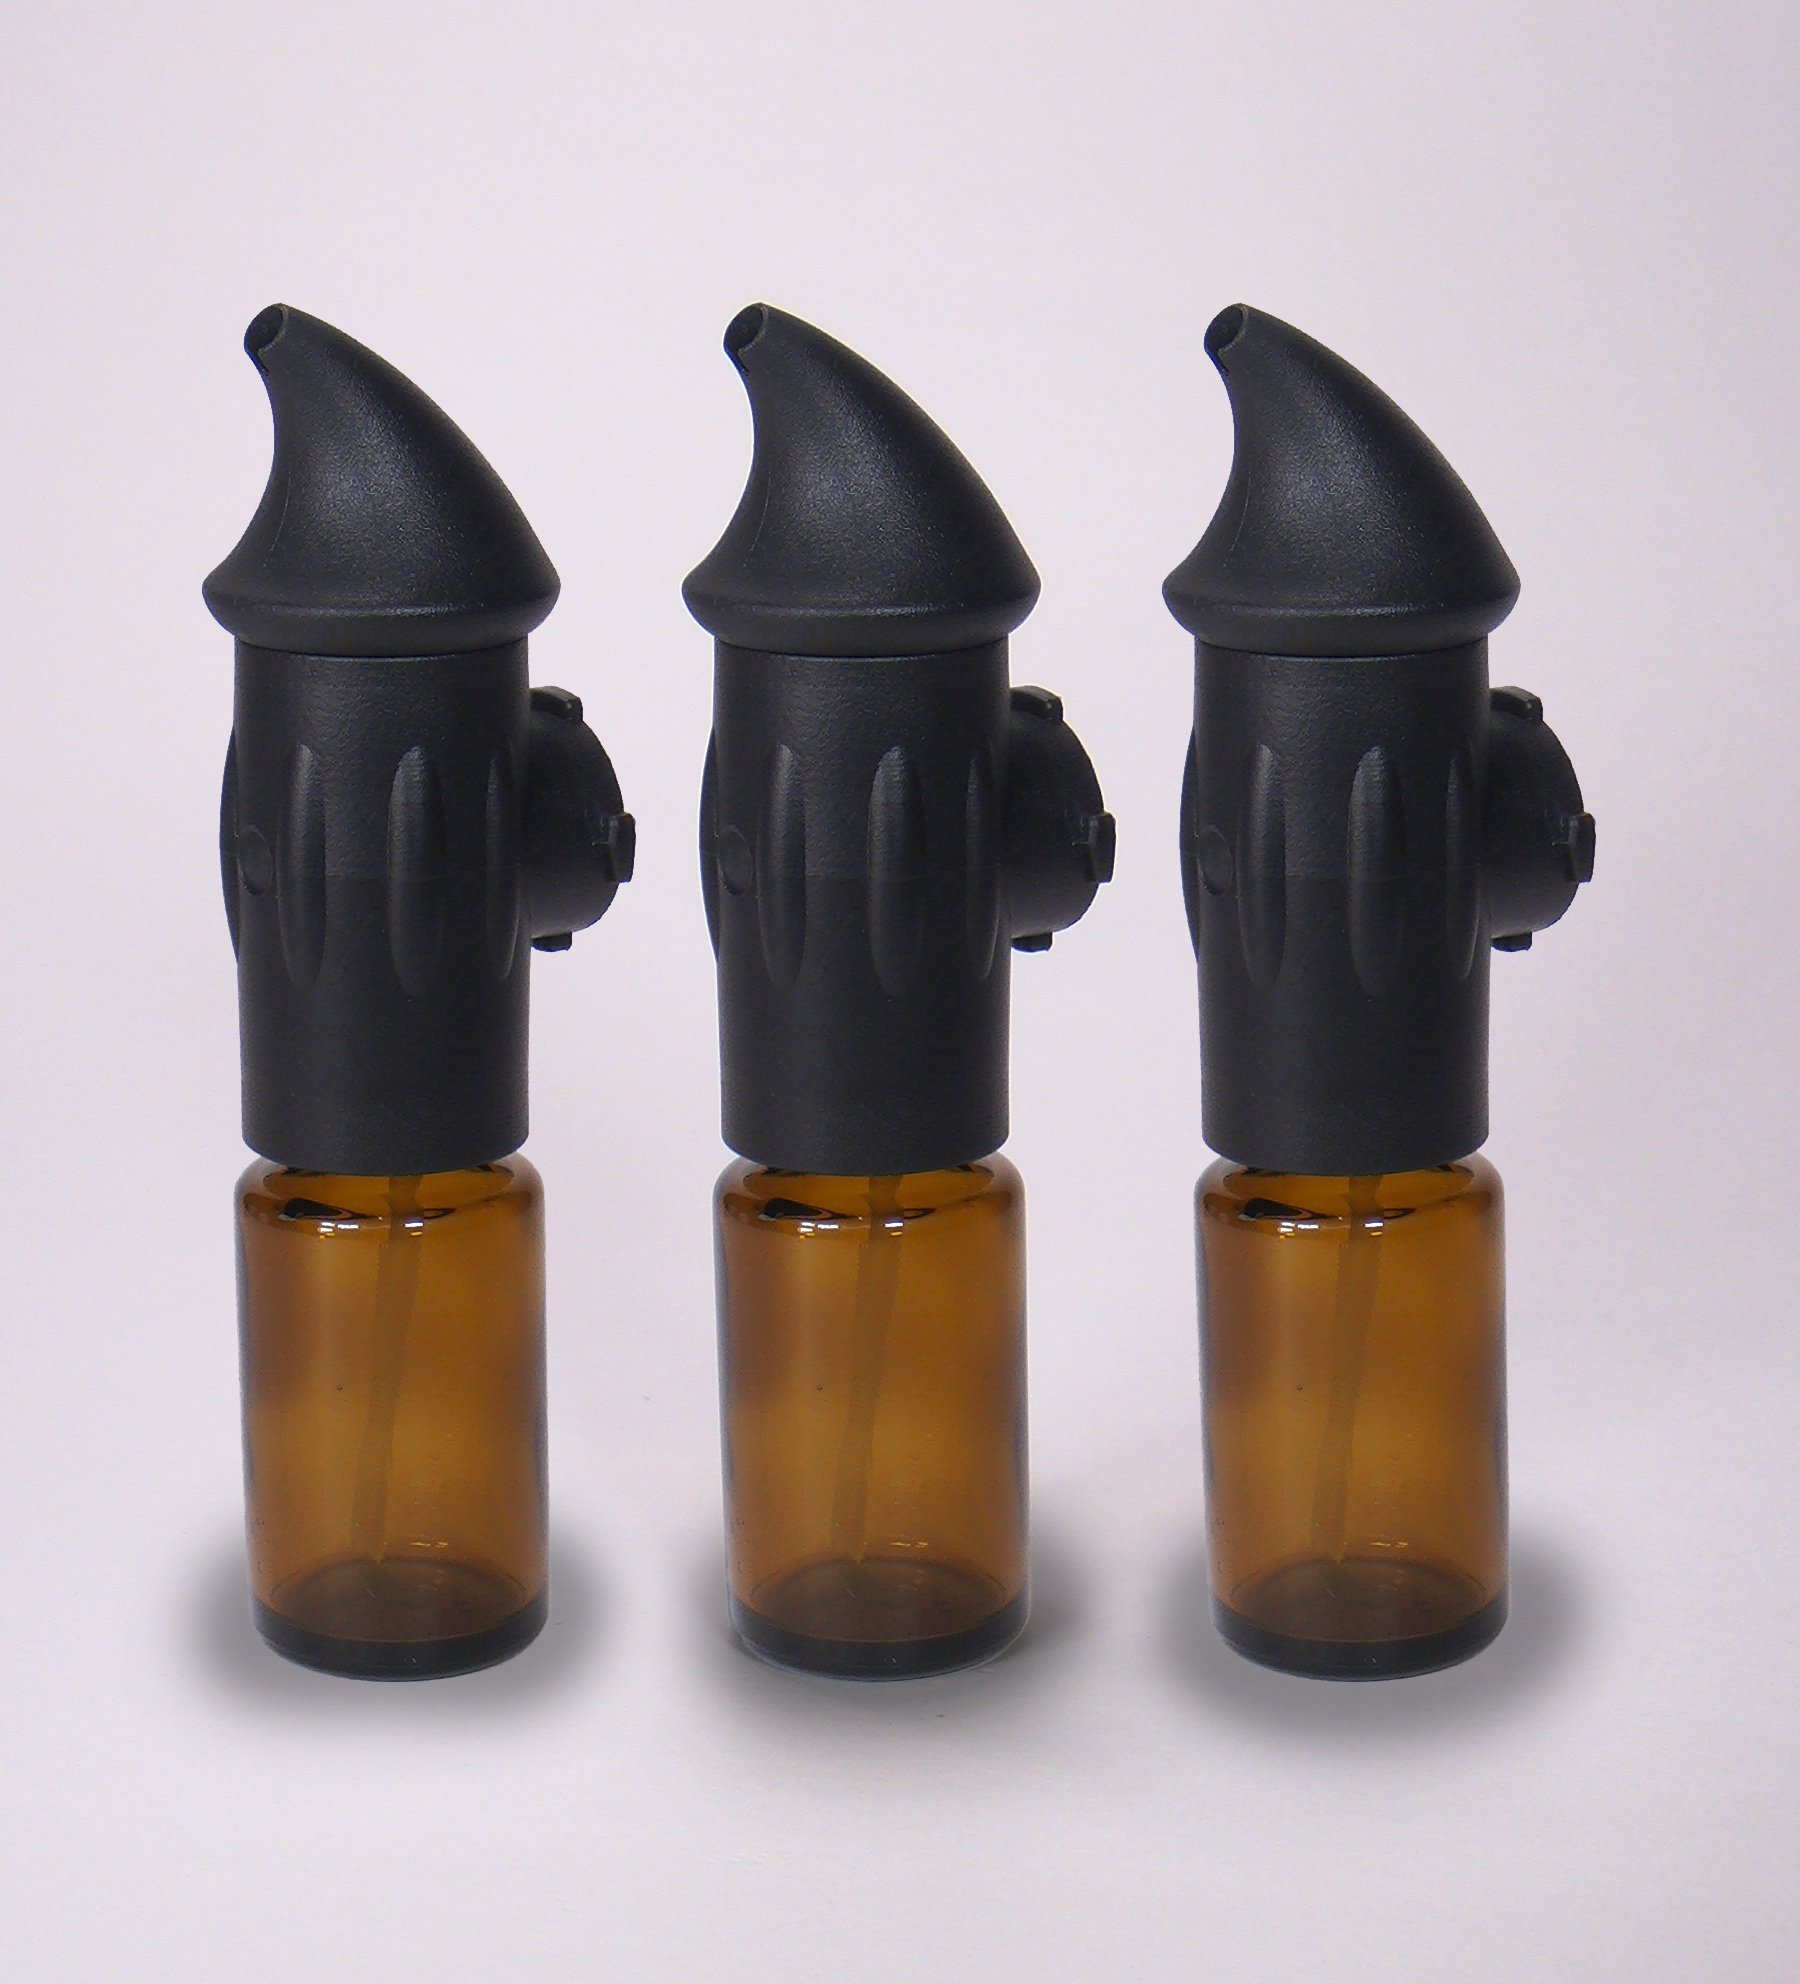 Atomizer Attachment for the Advanced™ (3pk) (15ml, Black)